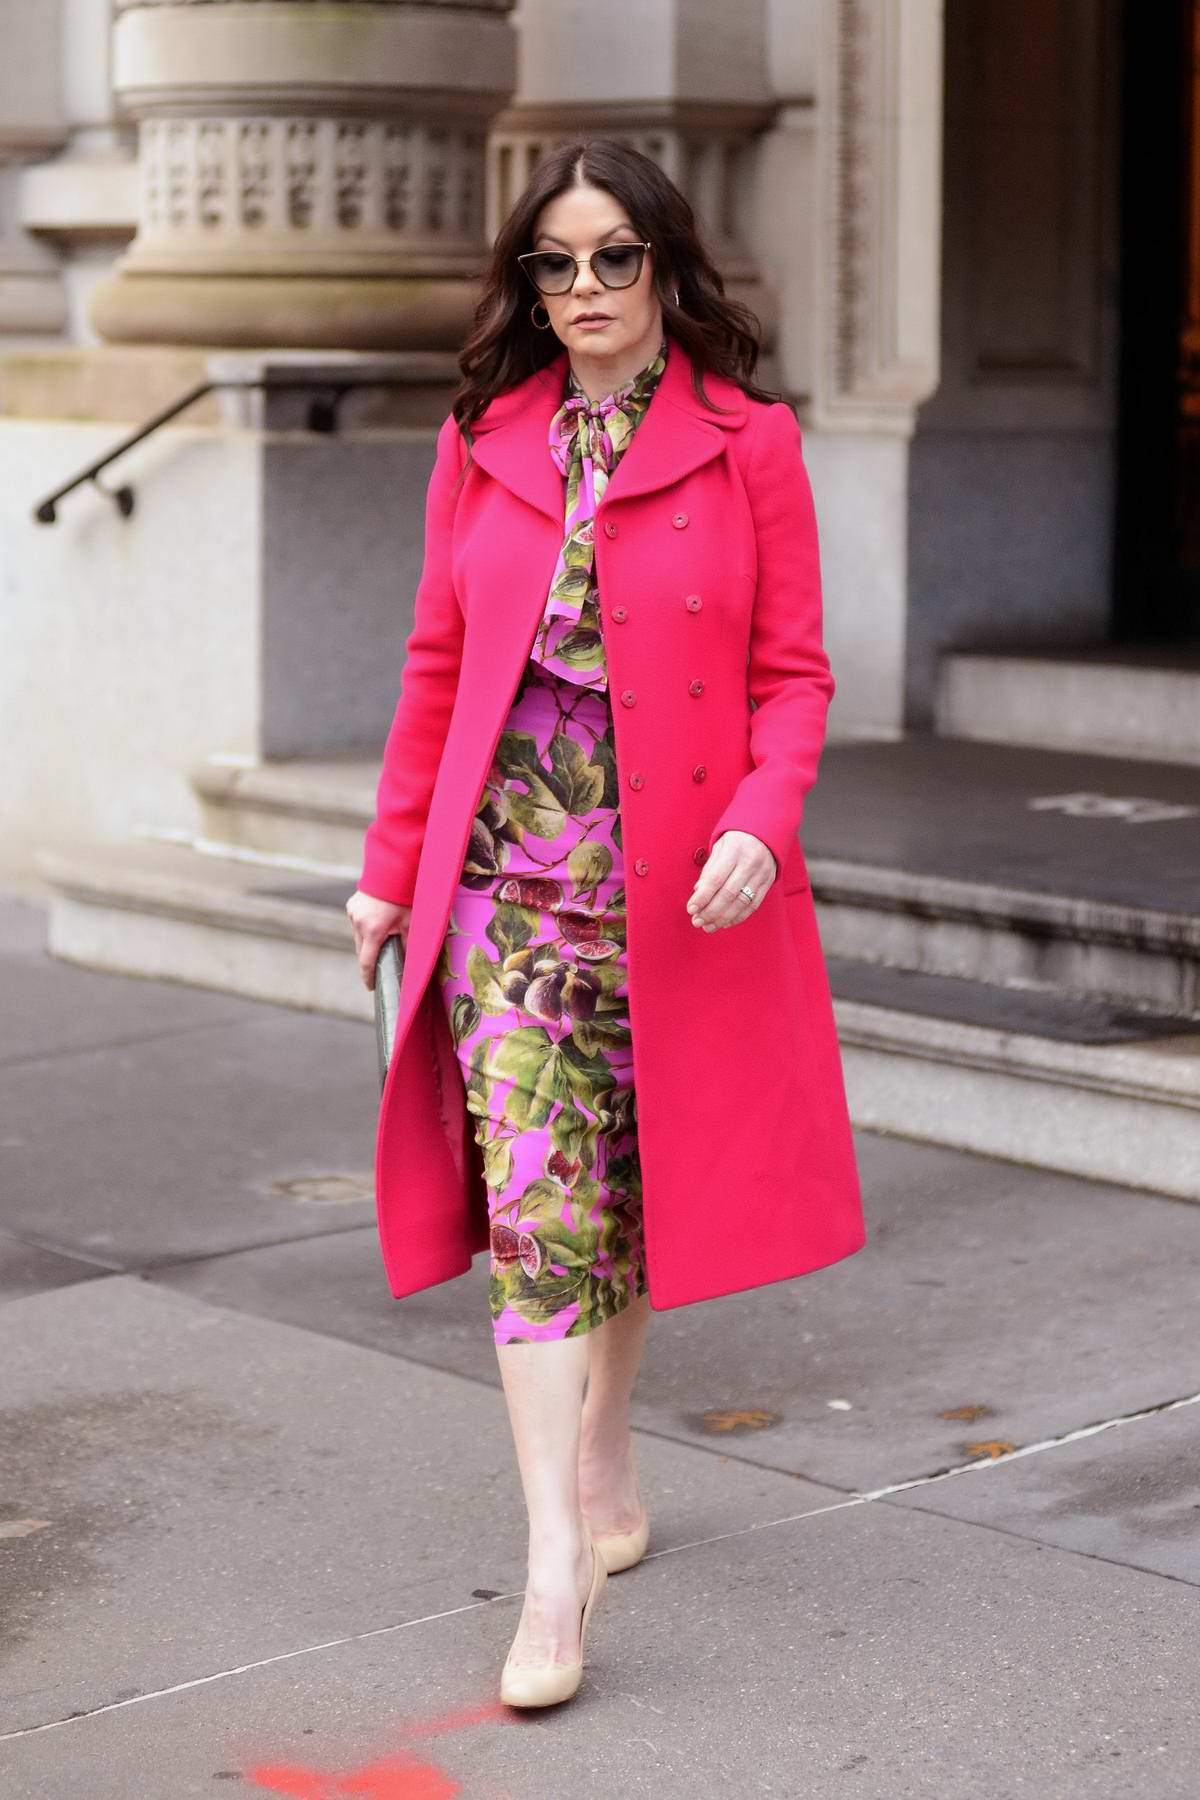 Catherine Zeta-Jones wore fuchsia pink coat with a floral print dress as she leaves her apartment in New York City